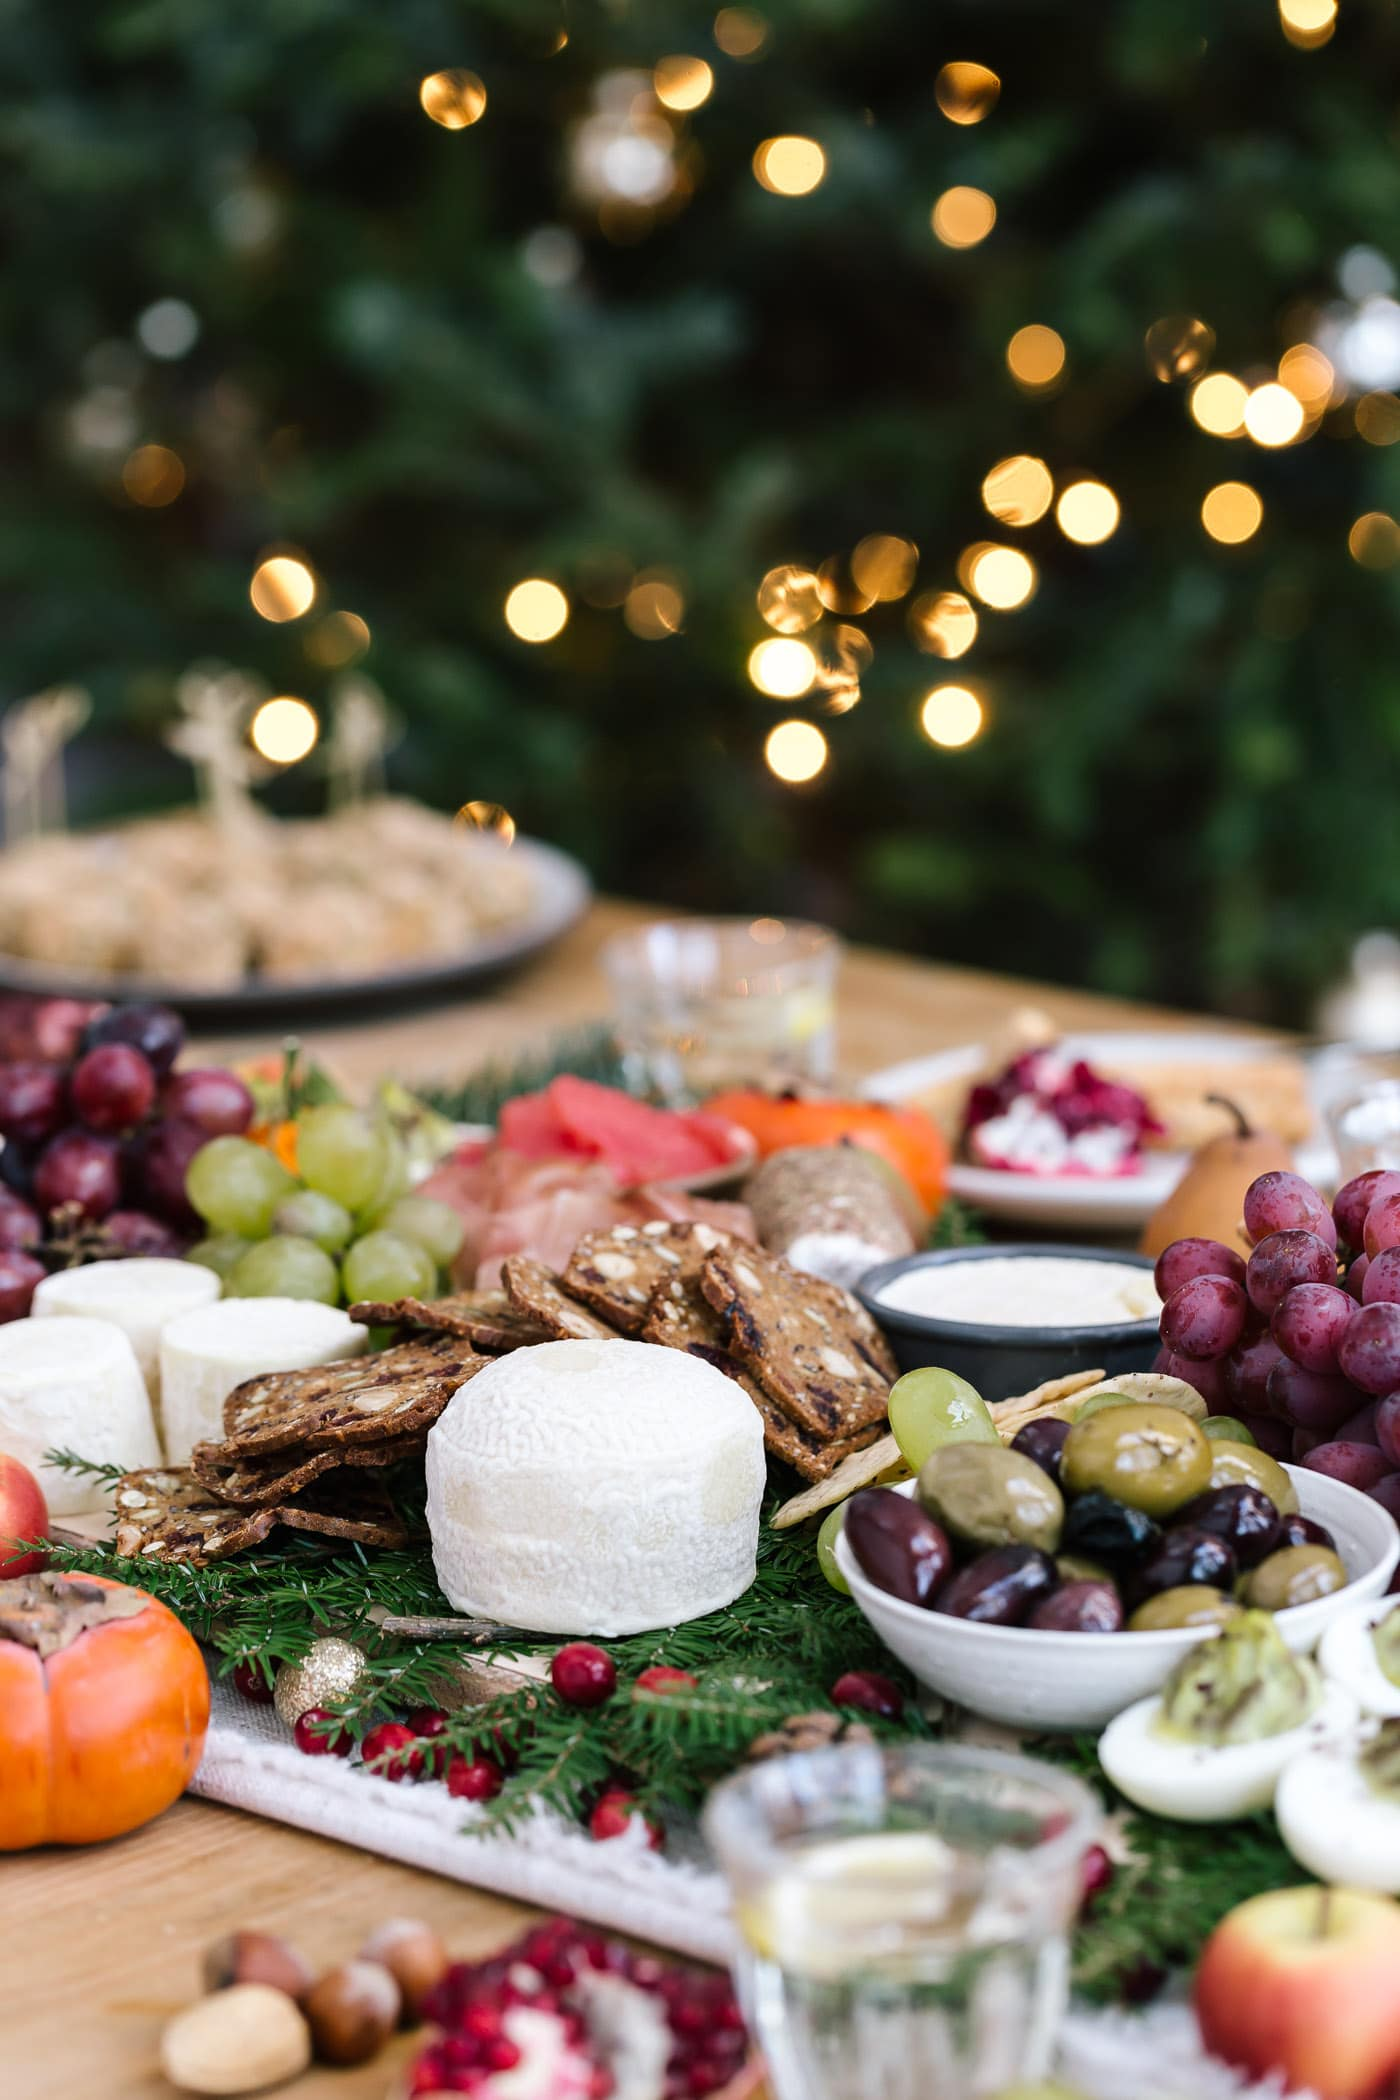 A table filled with cheese, baked goat cheese balls, fruit, olives and other edible items photographed with the Christmas tree in the background.